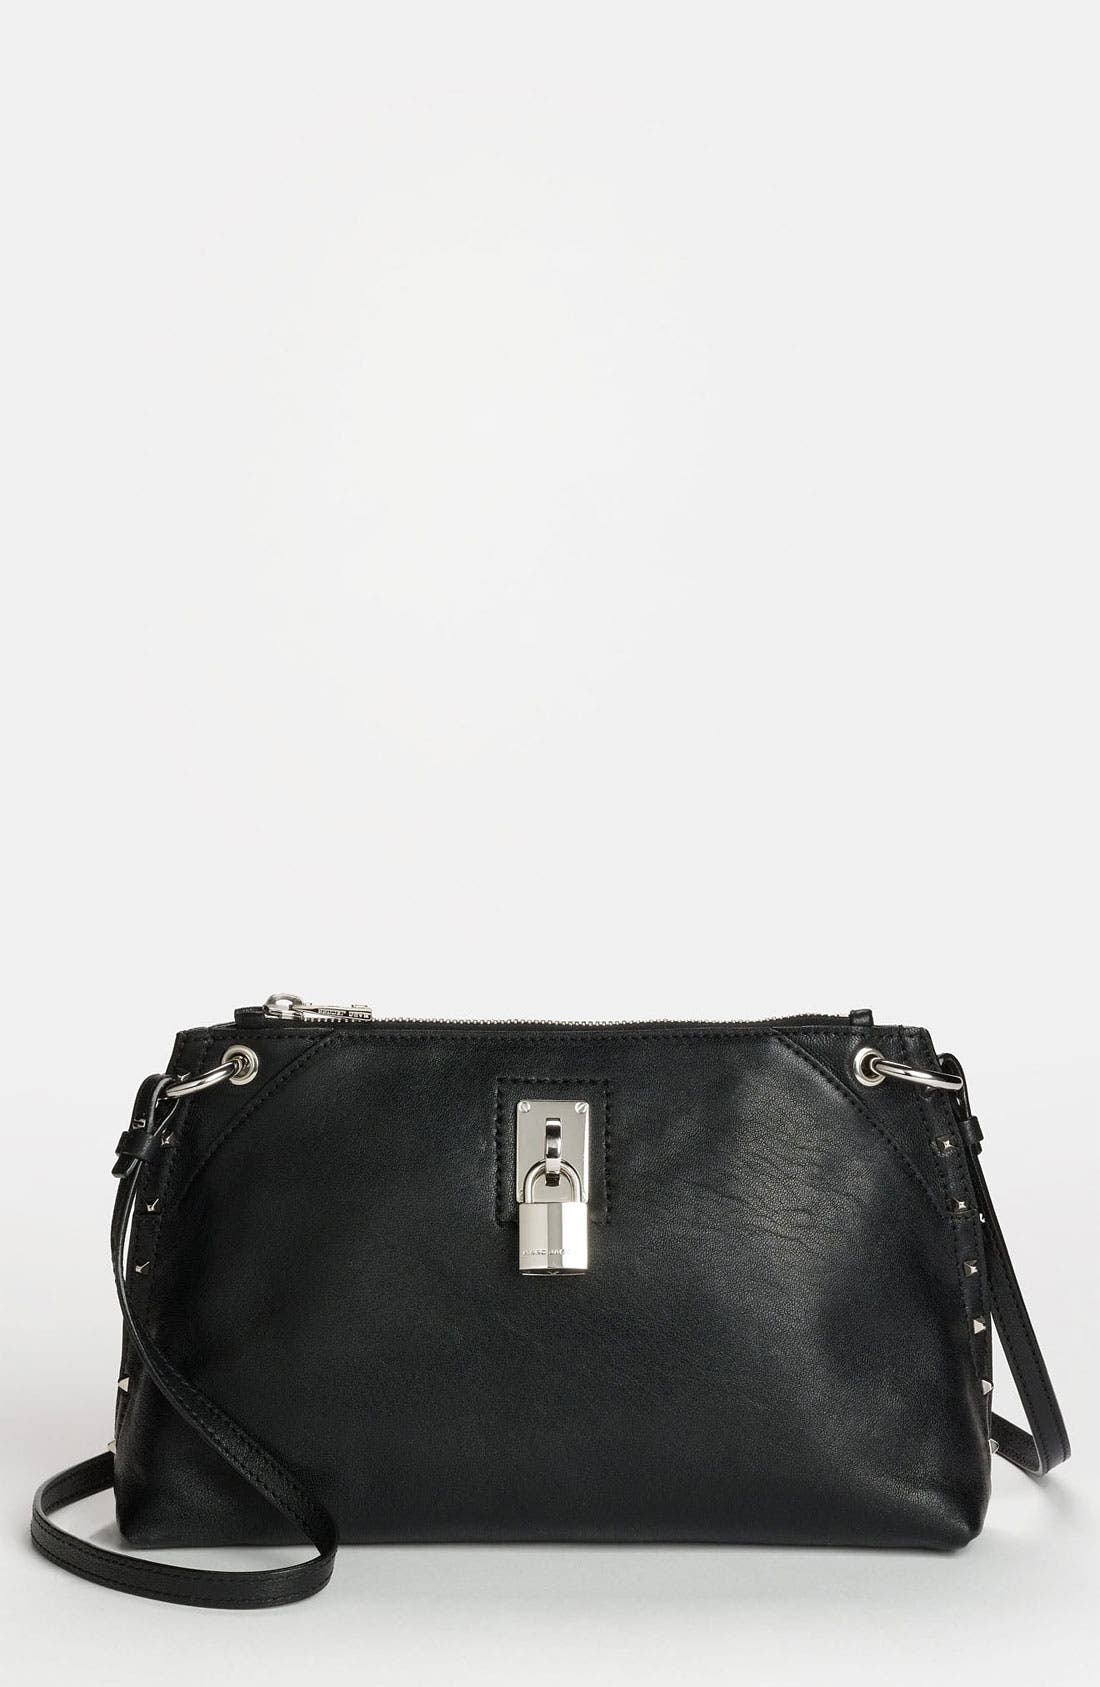 Alternate Image 1 Selected - MARC JACOBS 'Paradise Sweetie' Leather Crossbody Bag